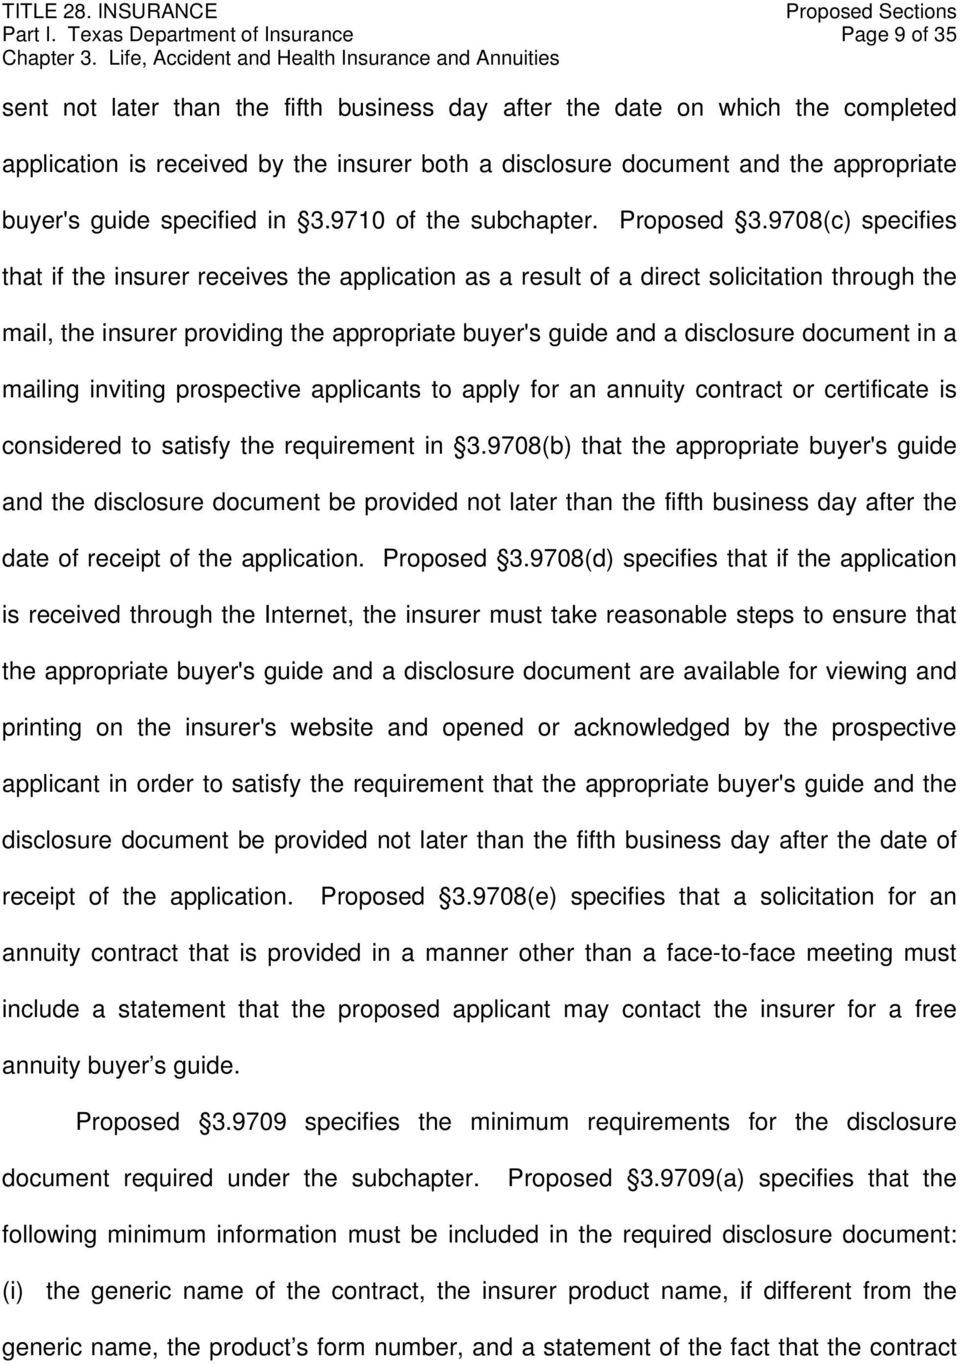 appropriate buyer's guide specified in 3.9710 of the subchapter. Proposed 3.